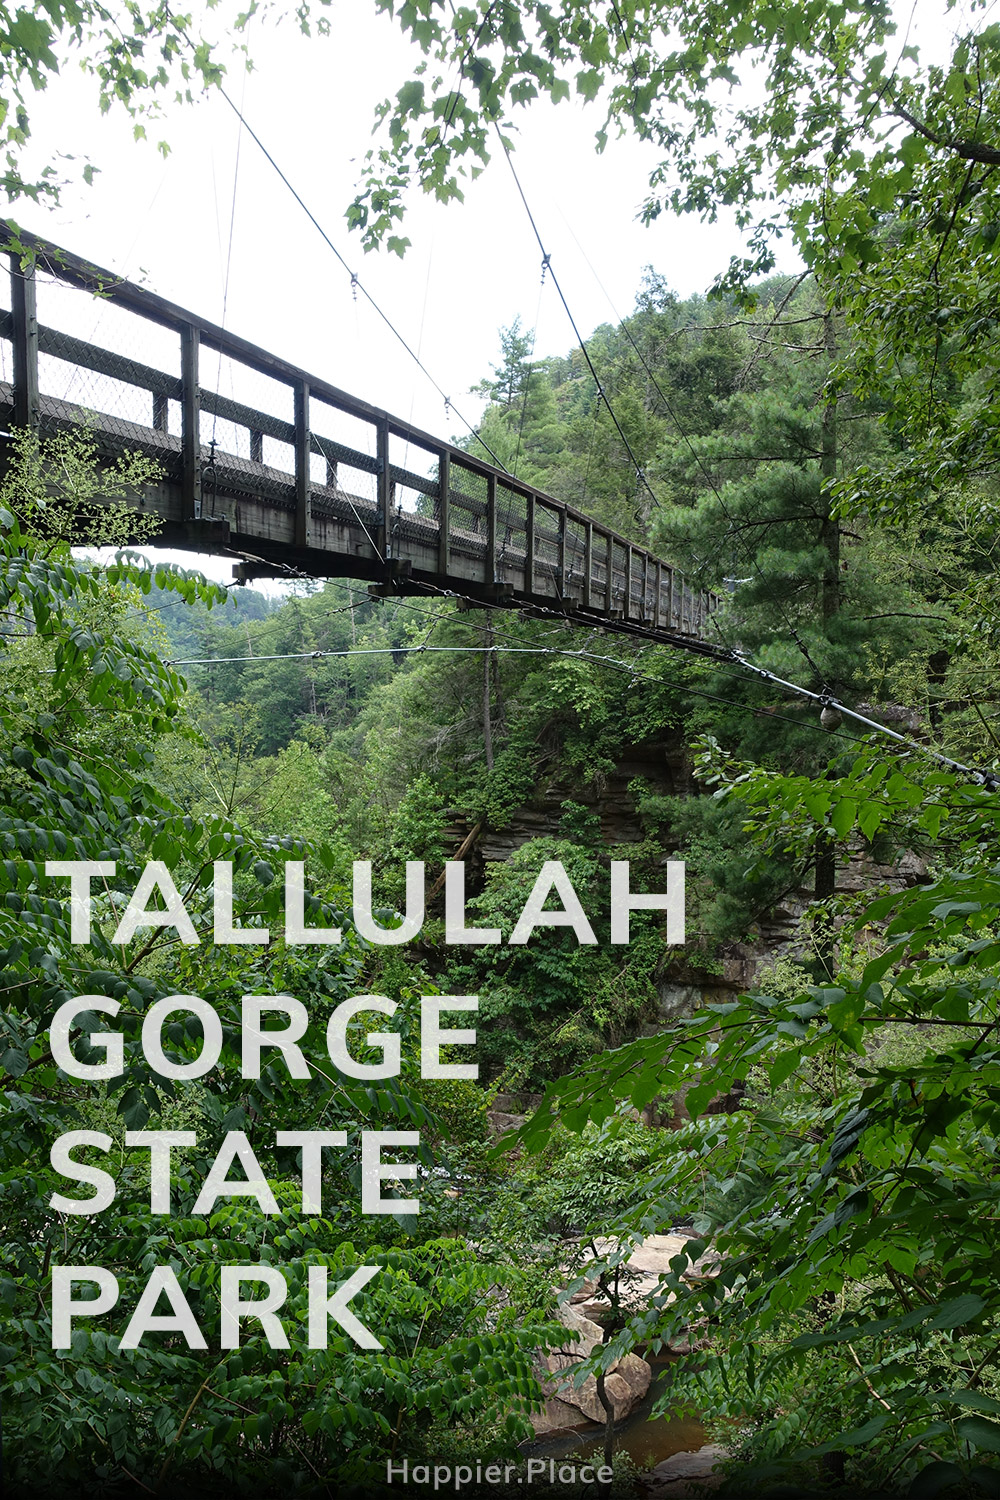 Tallulah Falls in the Tallulah Gorge State Park, Georgia, USA, waterfalls, river, canyon, Happier Place